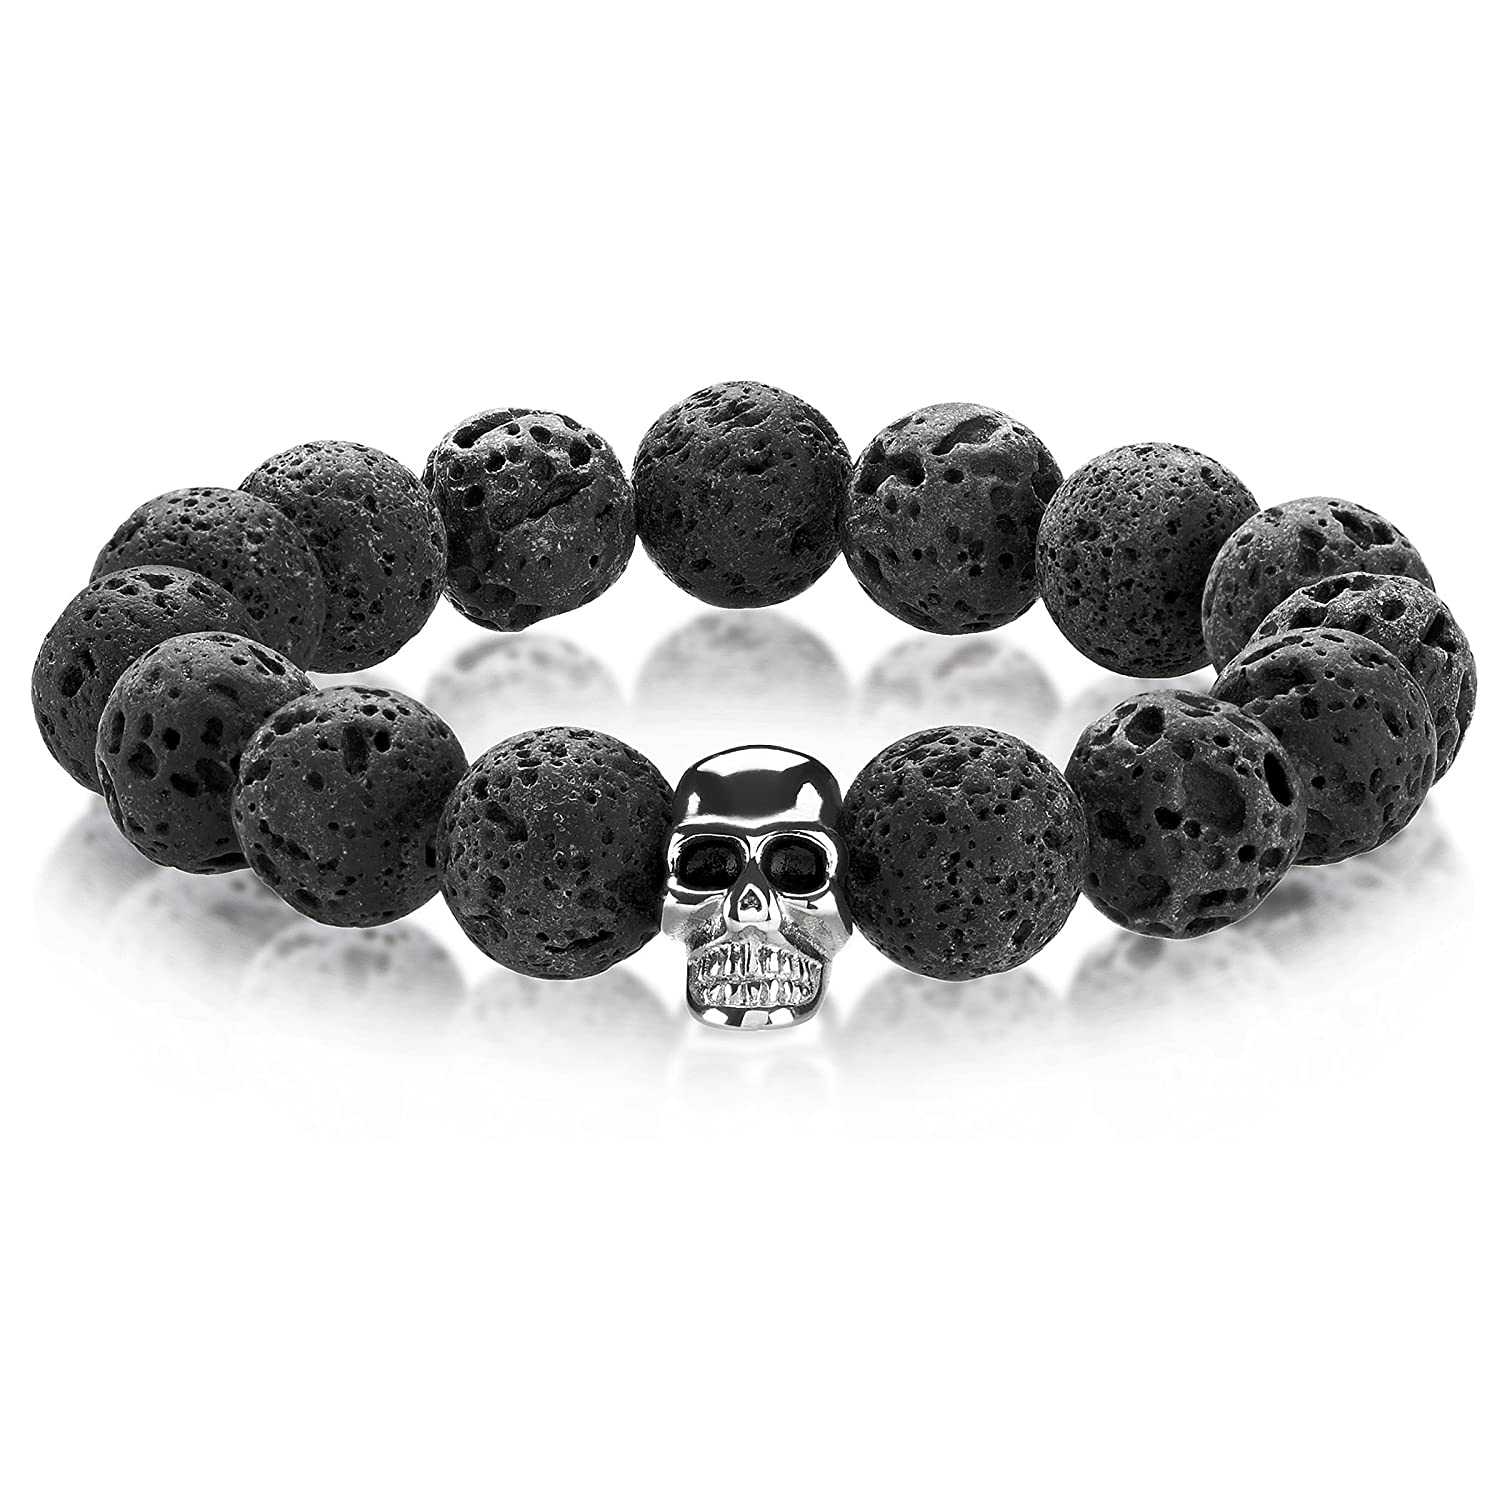 14mm Crucible Natural Stone Stainless Steel Skull Bead Stretch Bracelet West Coast Jewelry